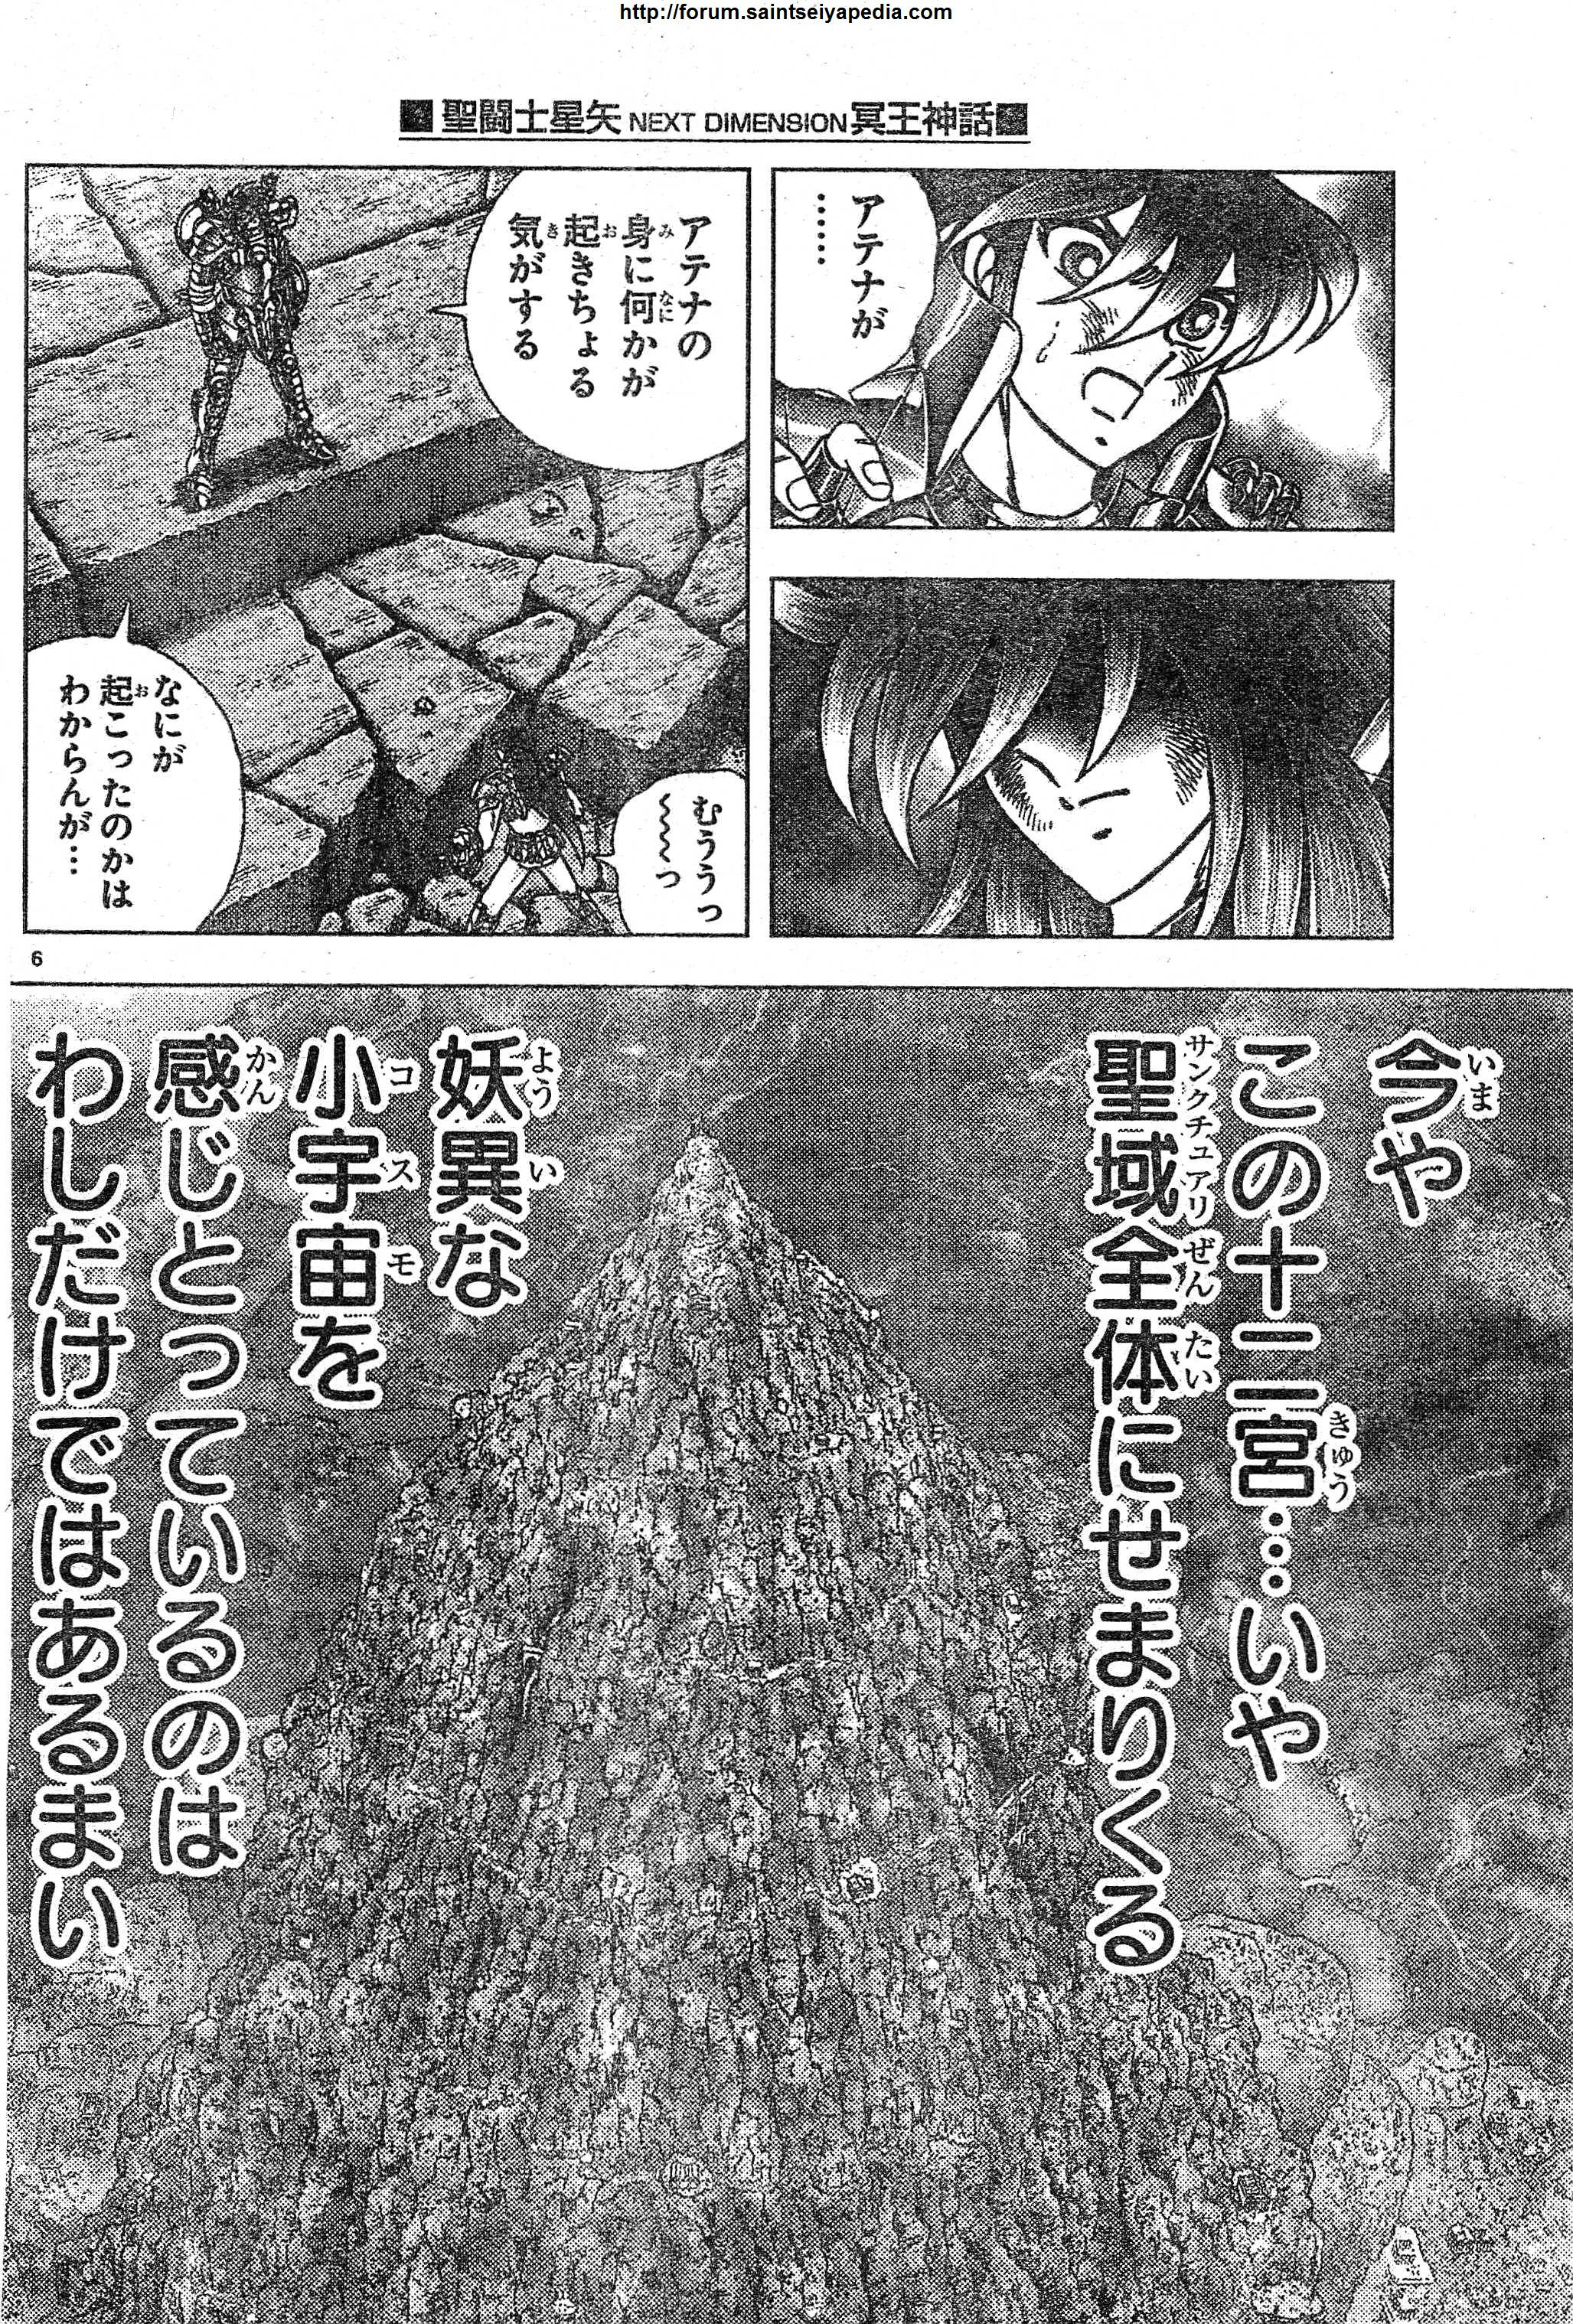 Saint Seiya - The Next Dimension - Chapitre 55 - 11